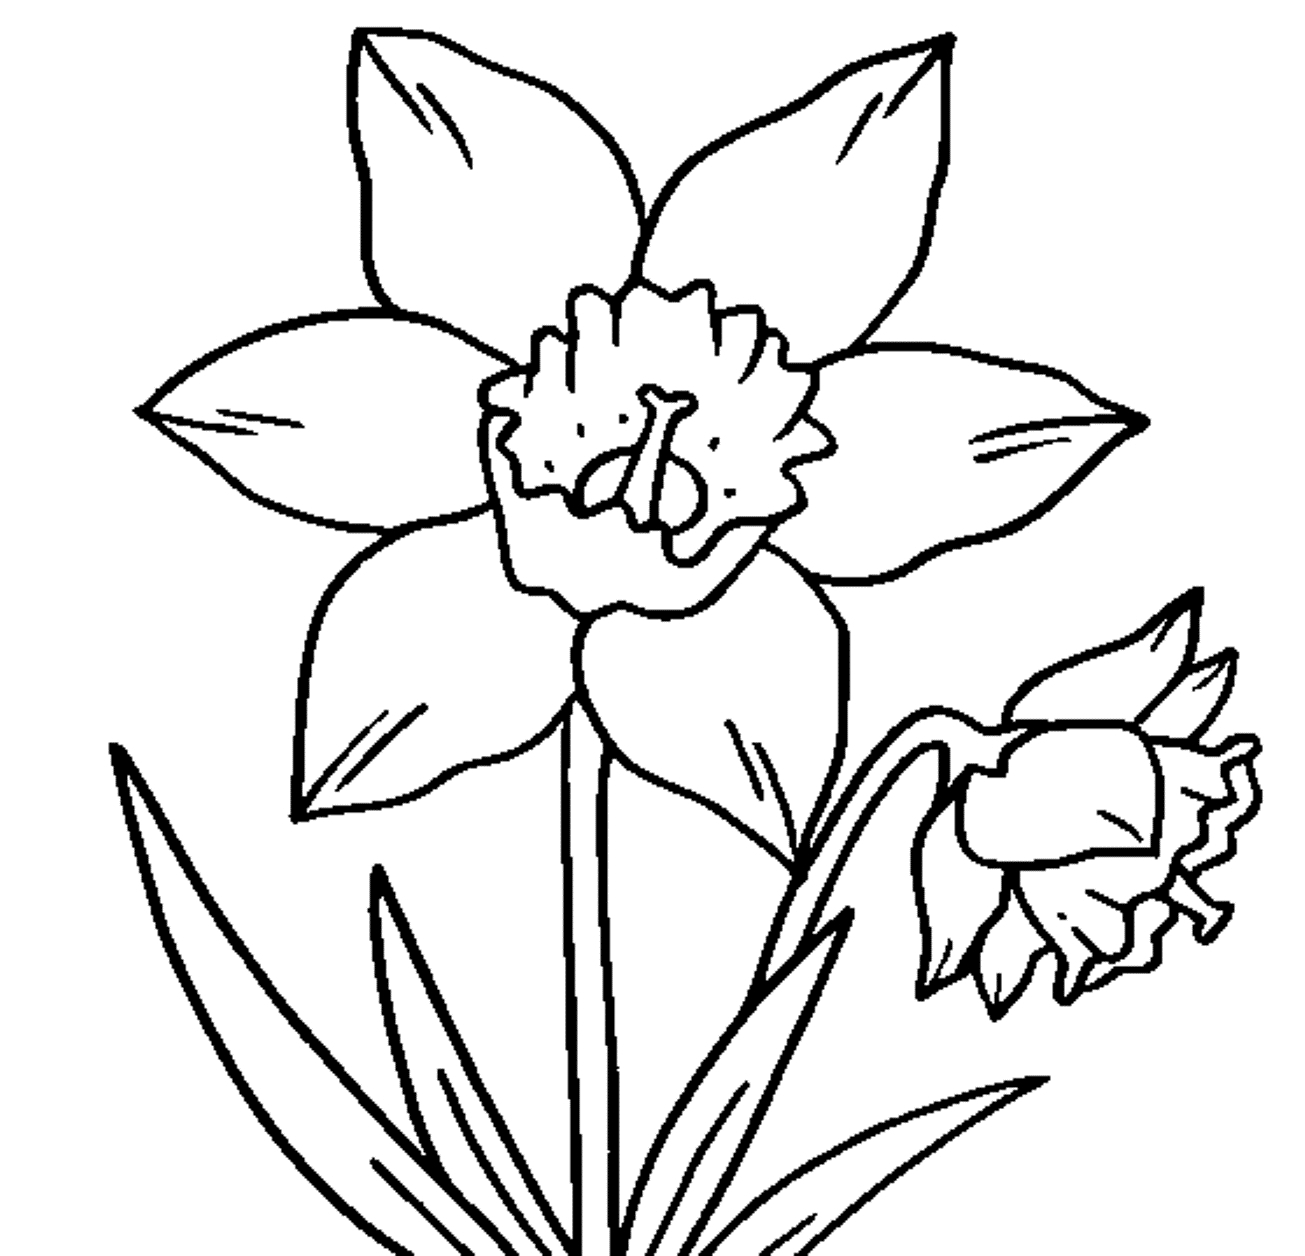 Special Daffodil Coloring Page Fresh Design Printable Sheet Gallery Of Daffodil Coloring Pages Gallery